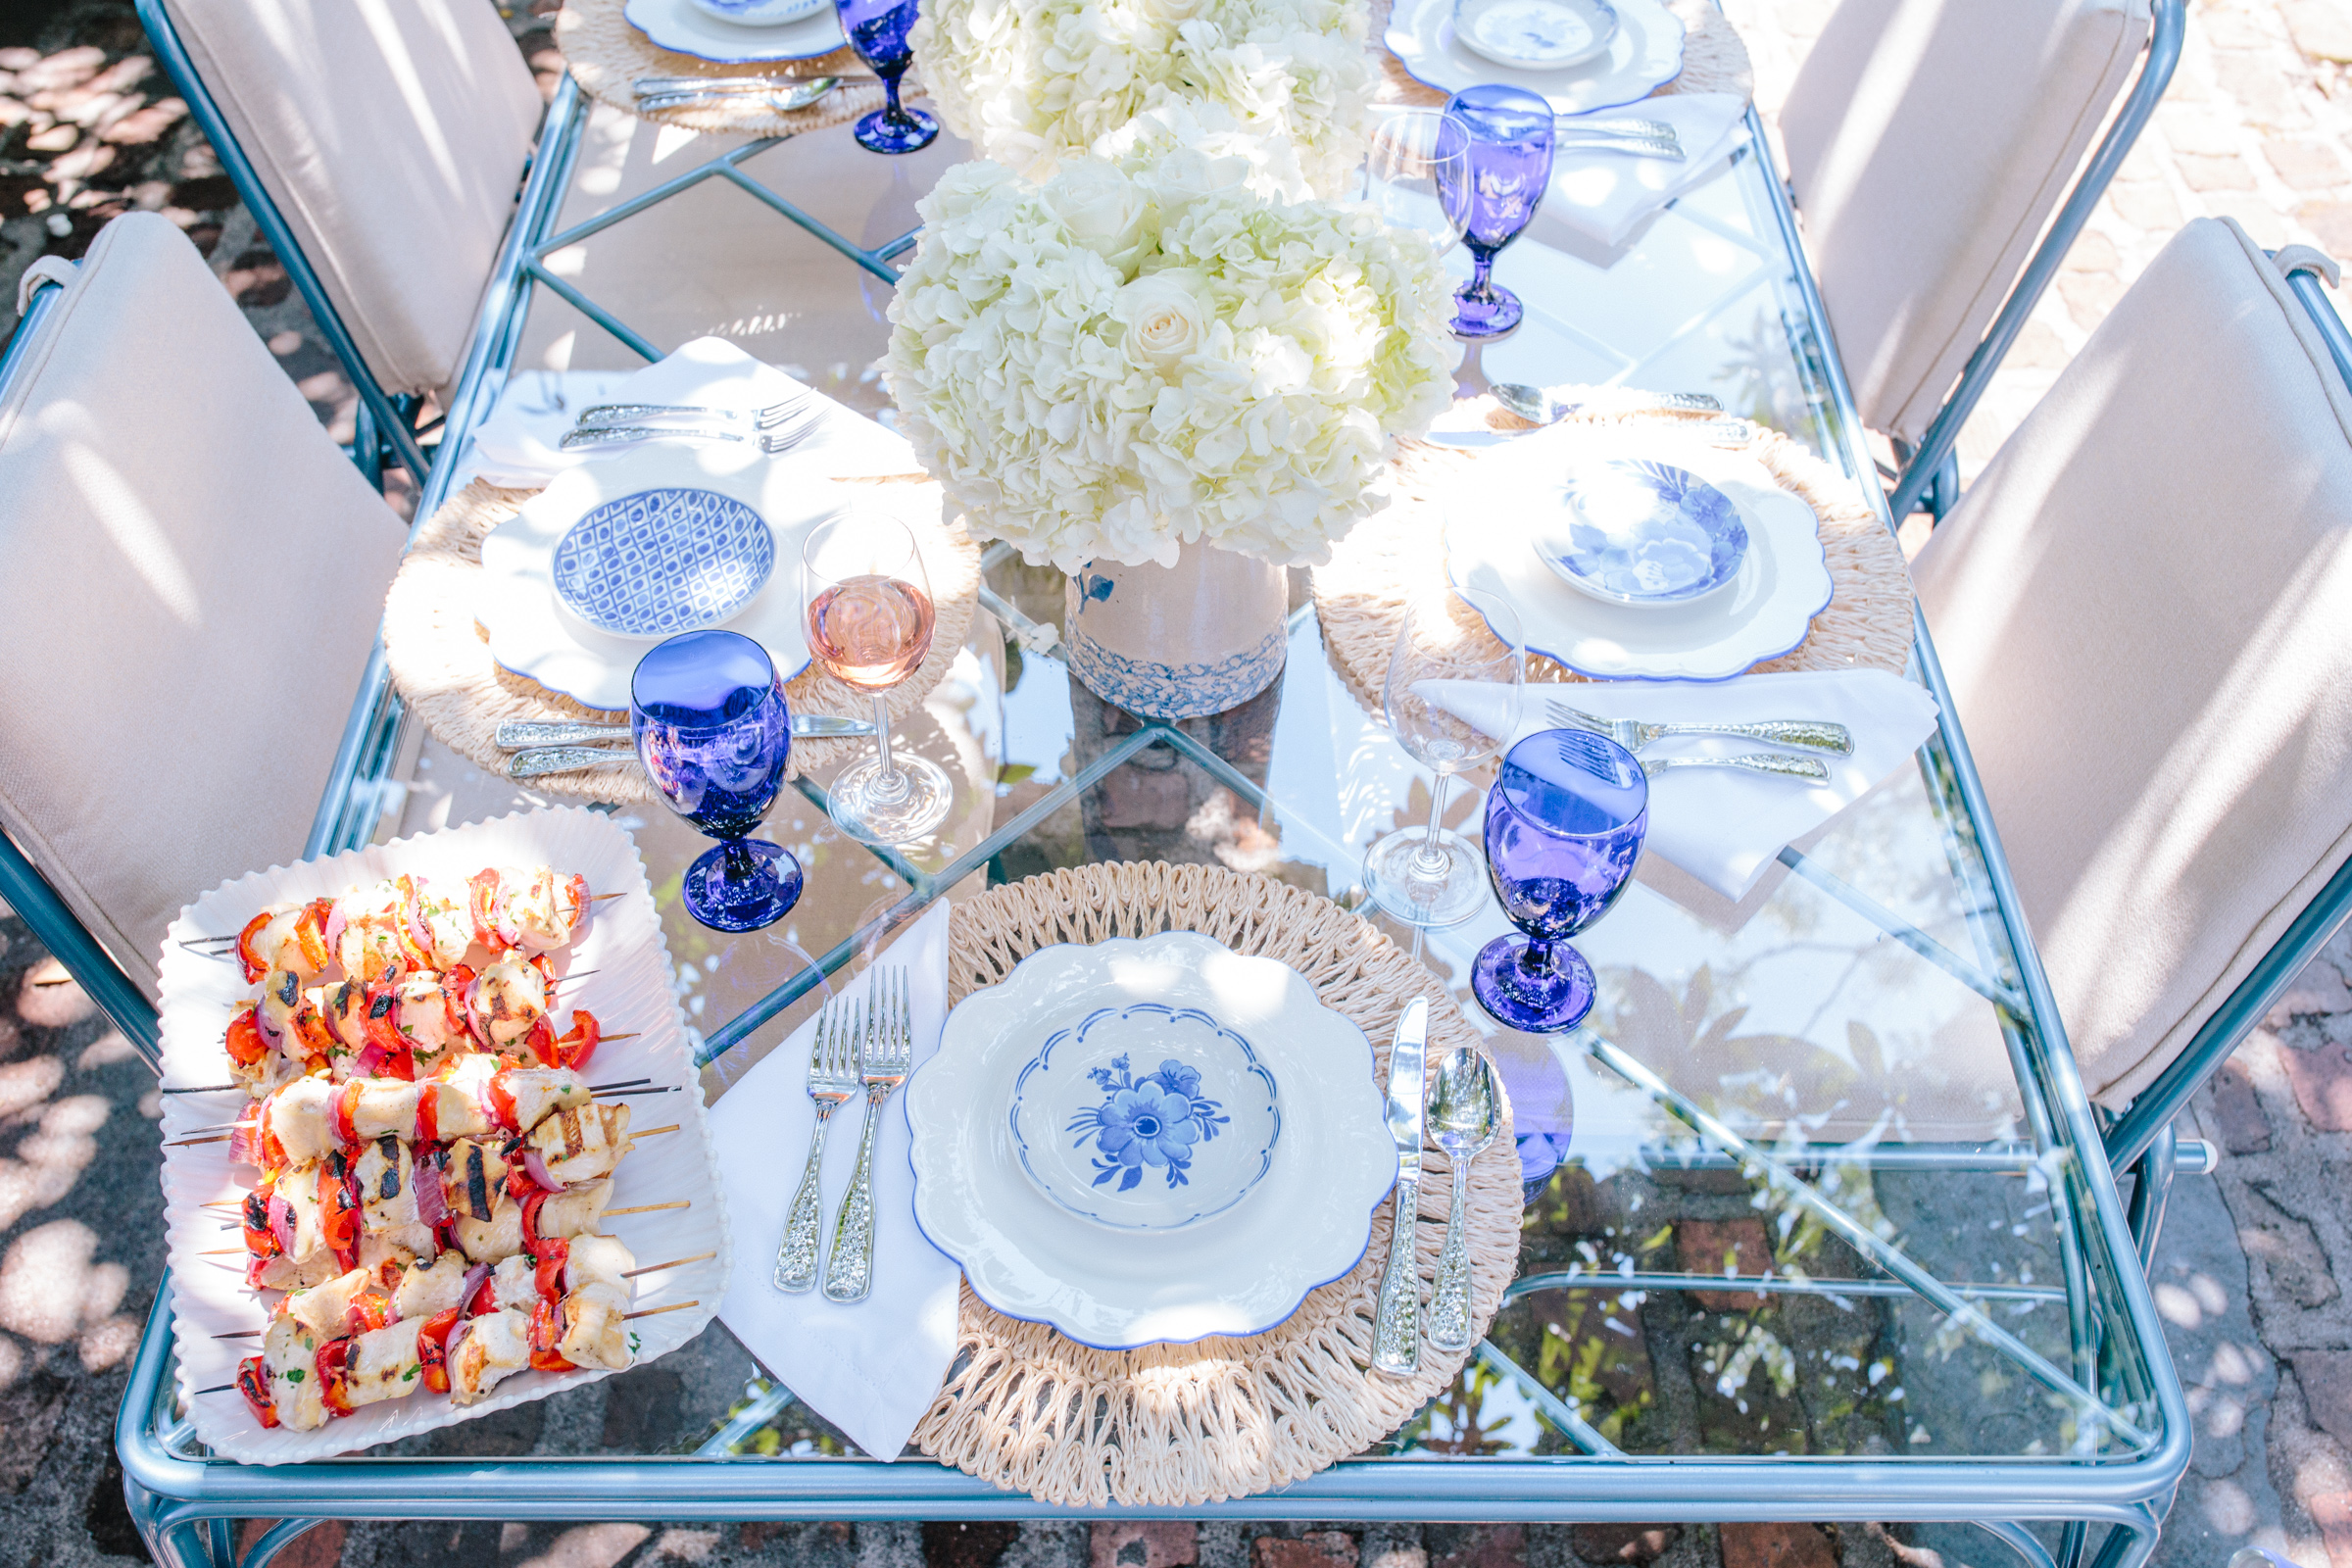 Party hosting tips: how to set a blue and white tablescape for the 4th of July // Rhyme & Reason